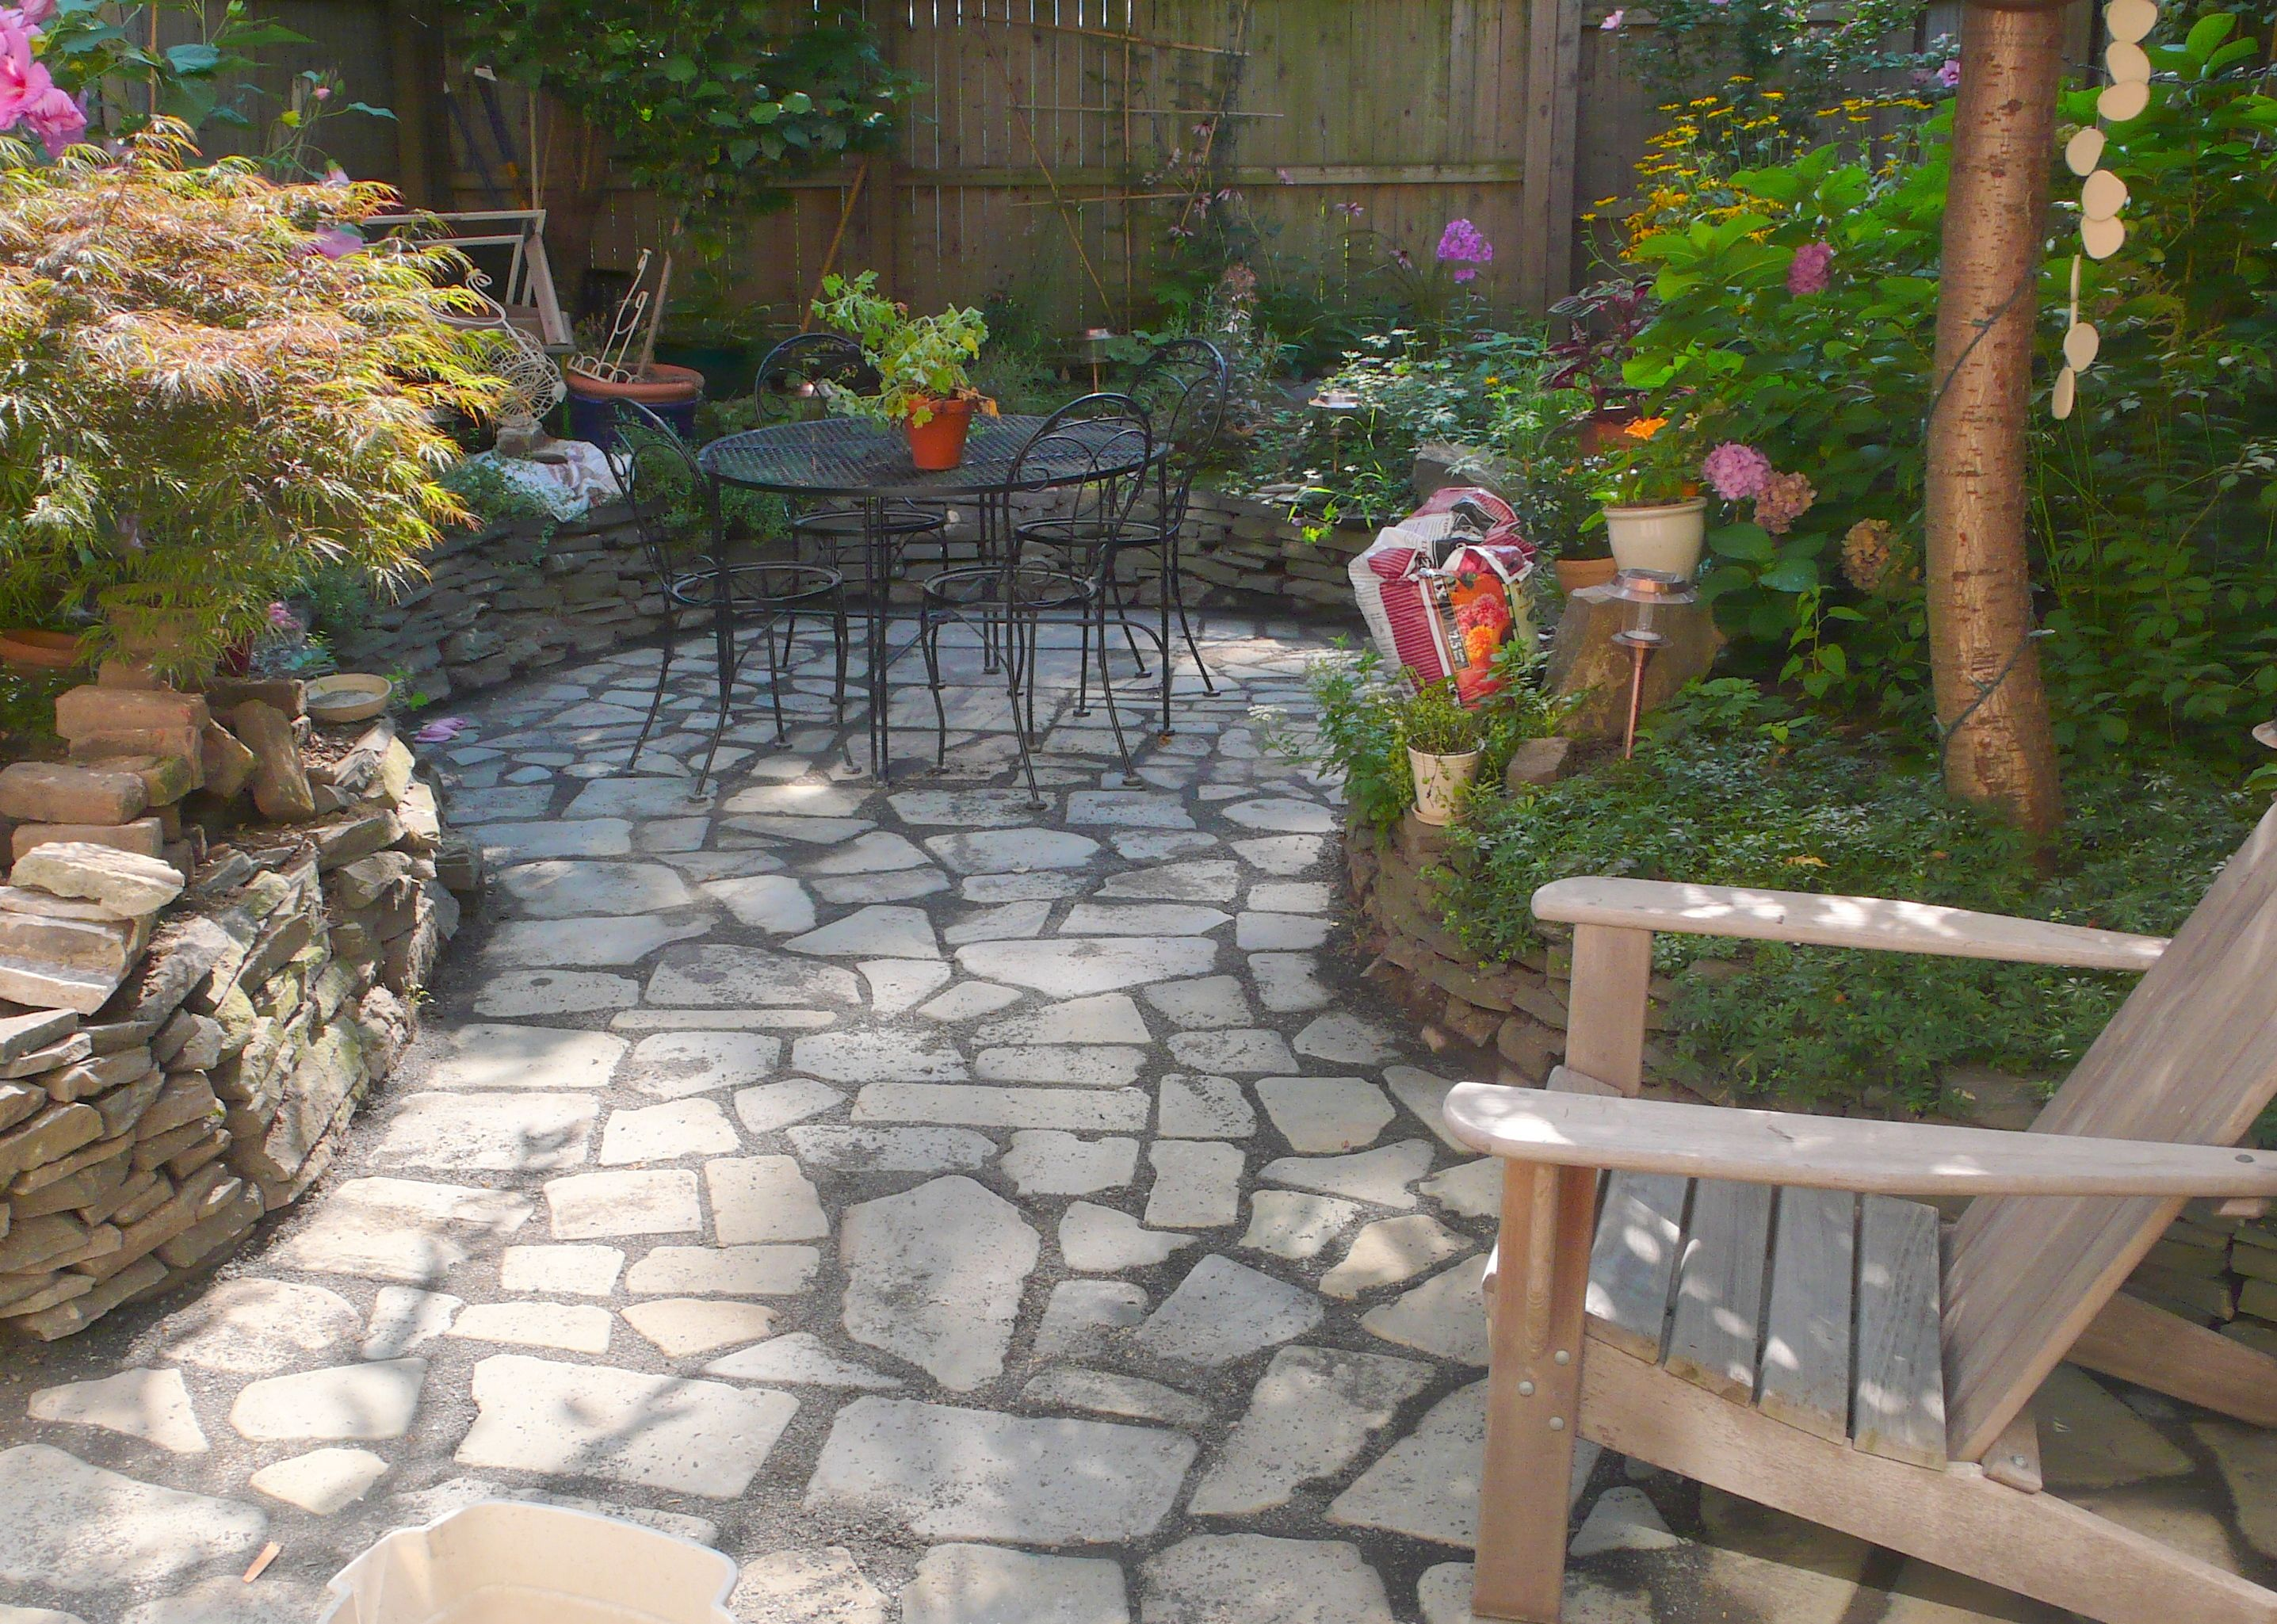 sunken patio backing to a french drain grading project